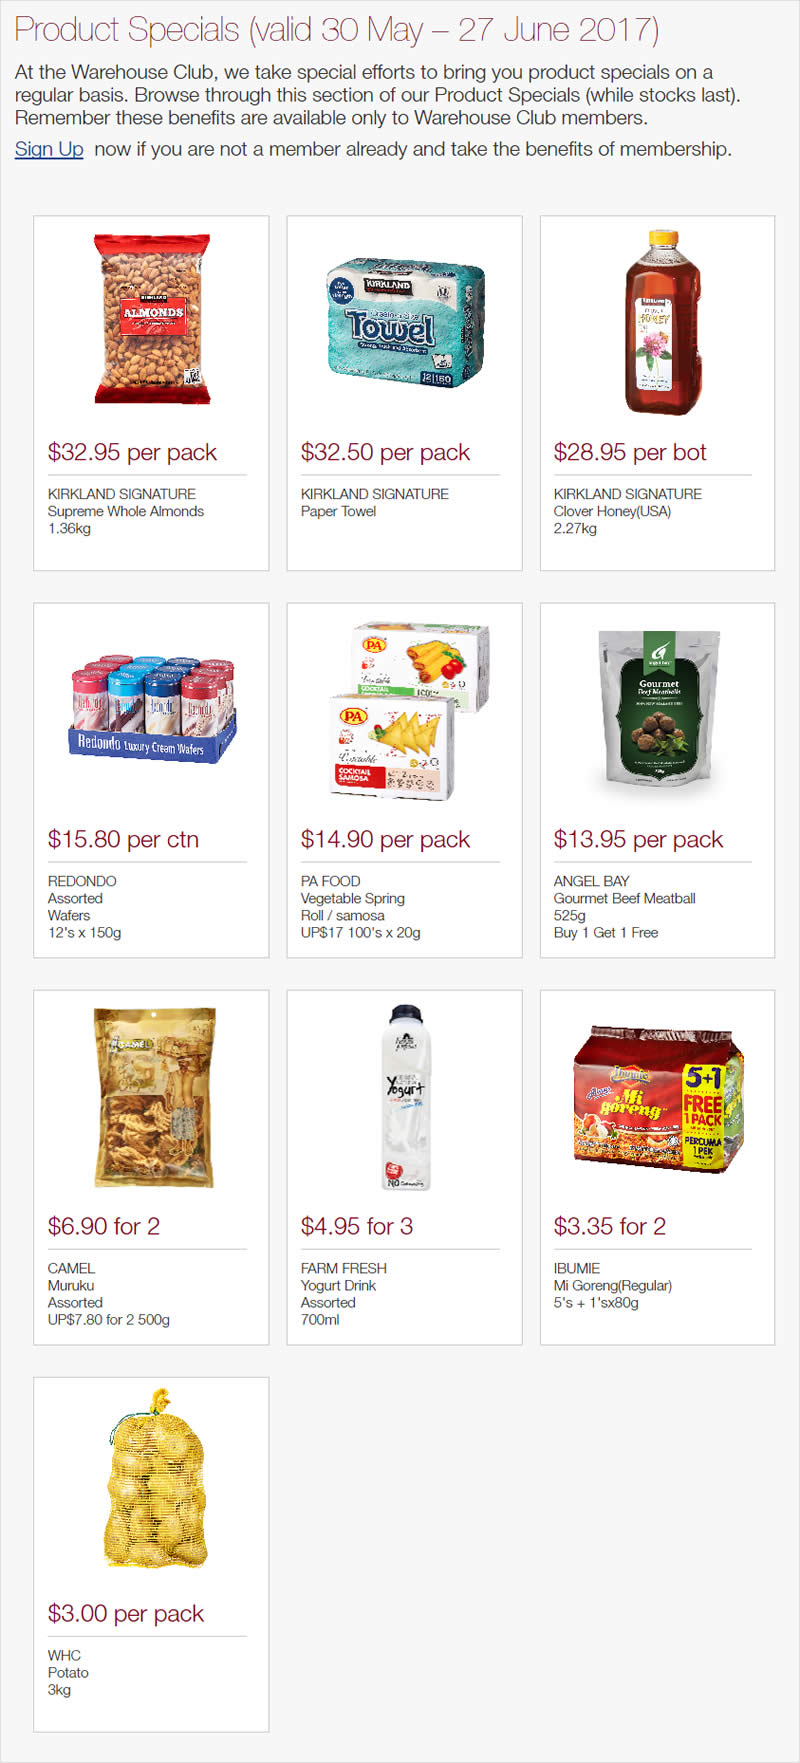 image about Crazy 8 Printable Coupon named Runner warehouse coupon - Insane 8 printable discount codes